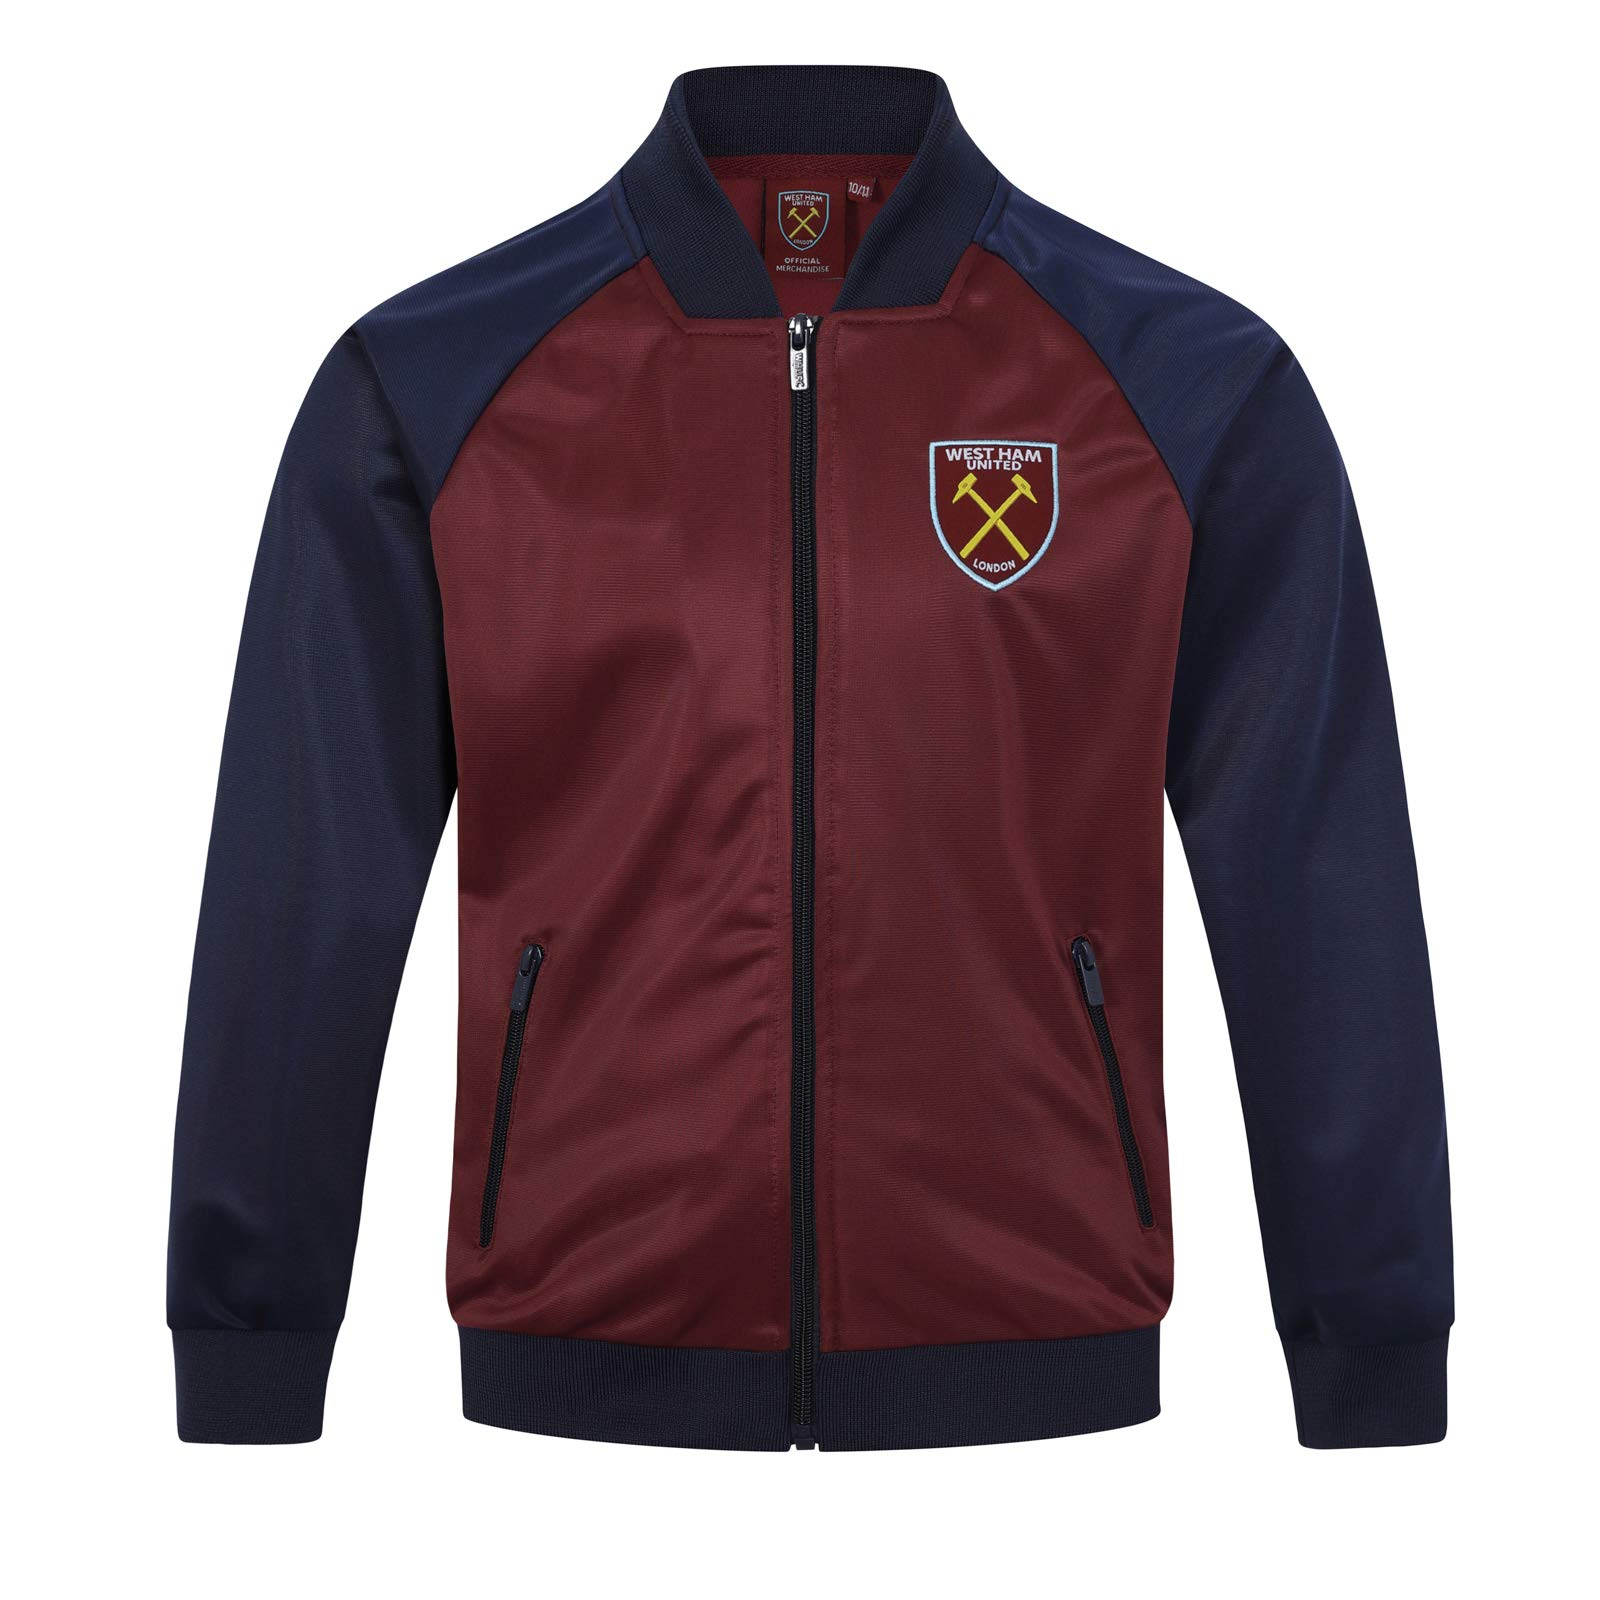 West Ham United Fc Official Gift Boys Retro Track Top Jacket Claret 10-11 Years